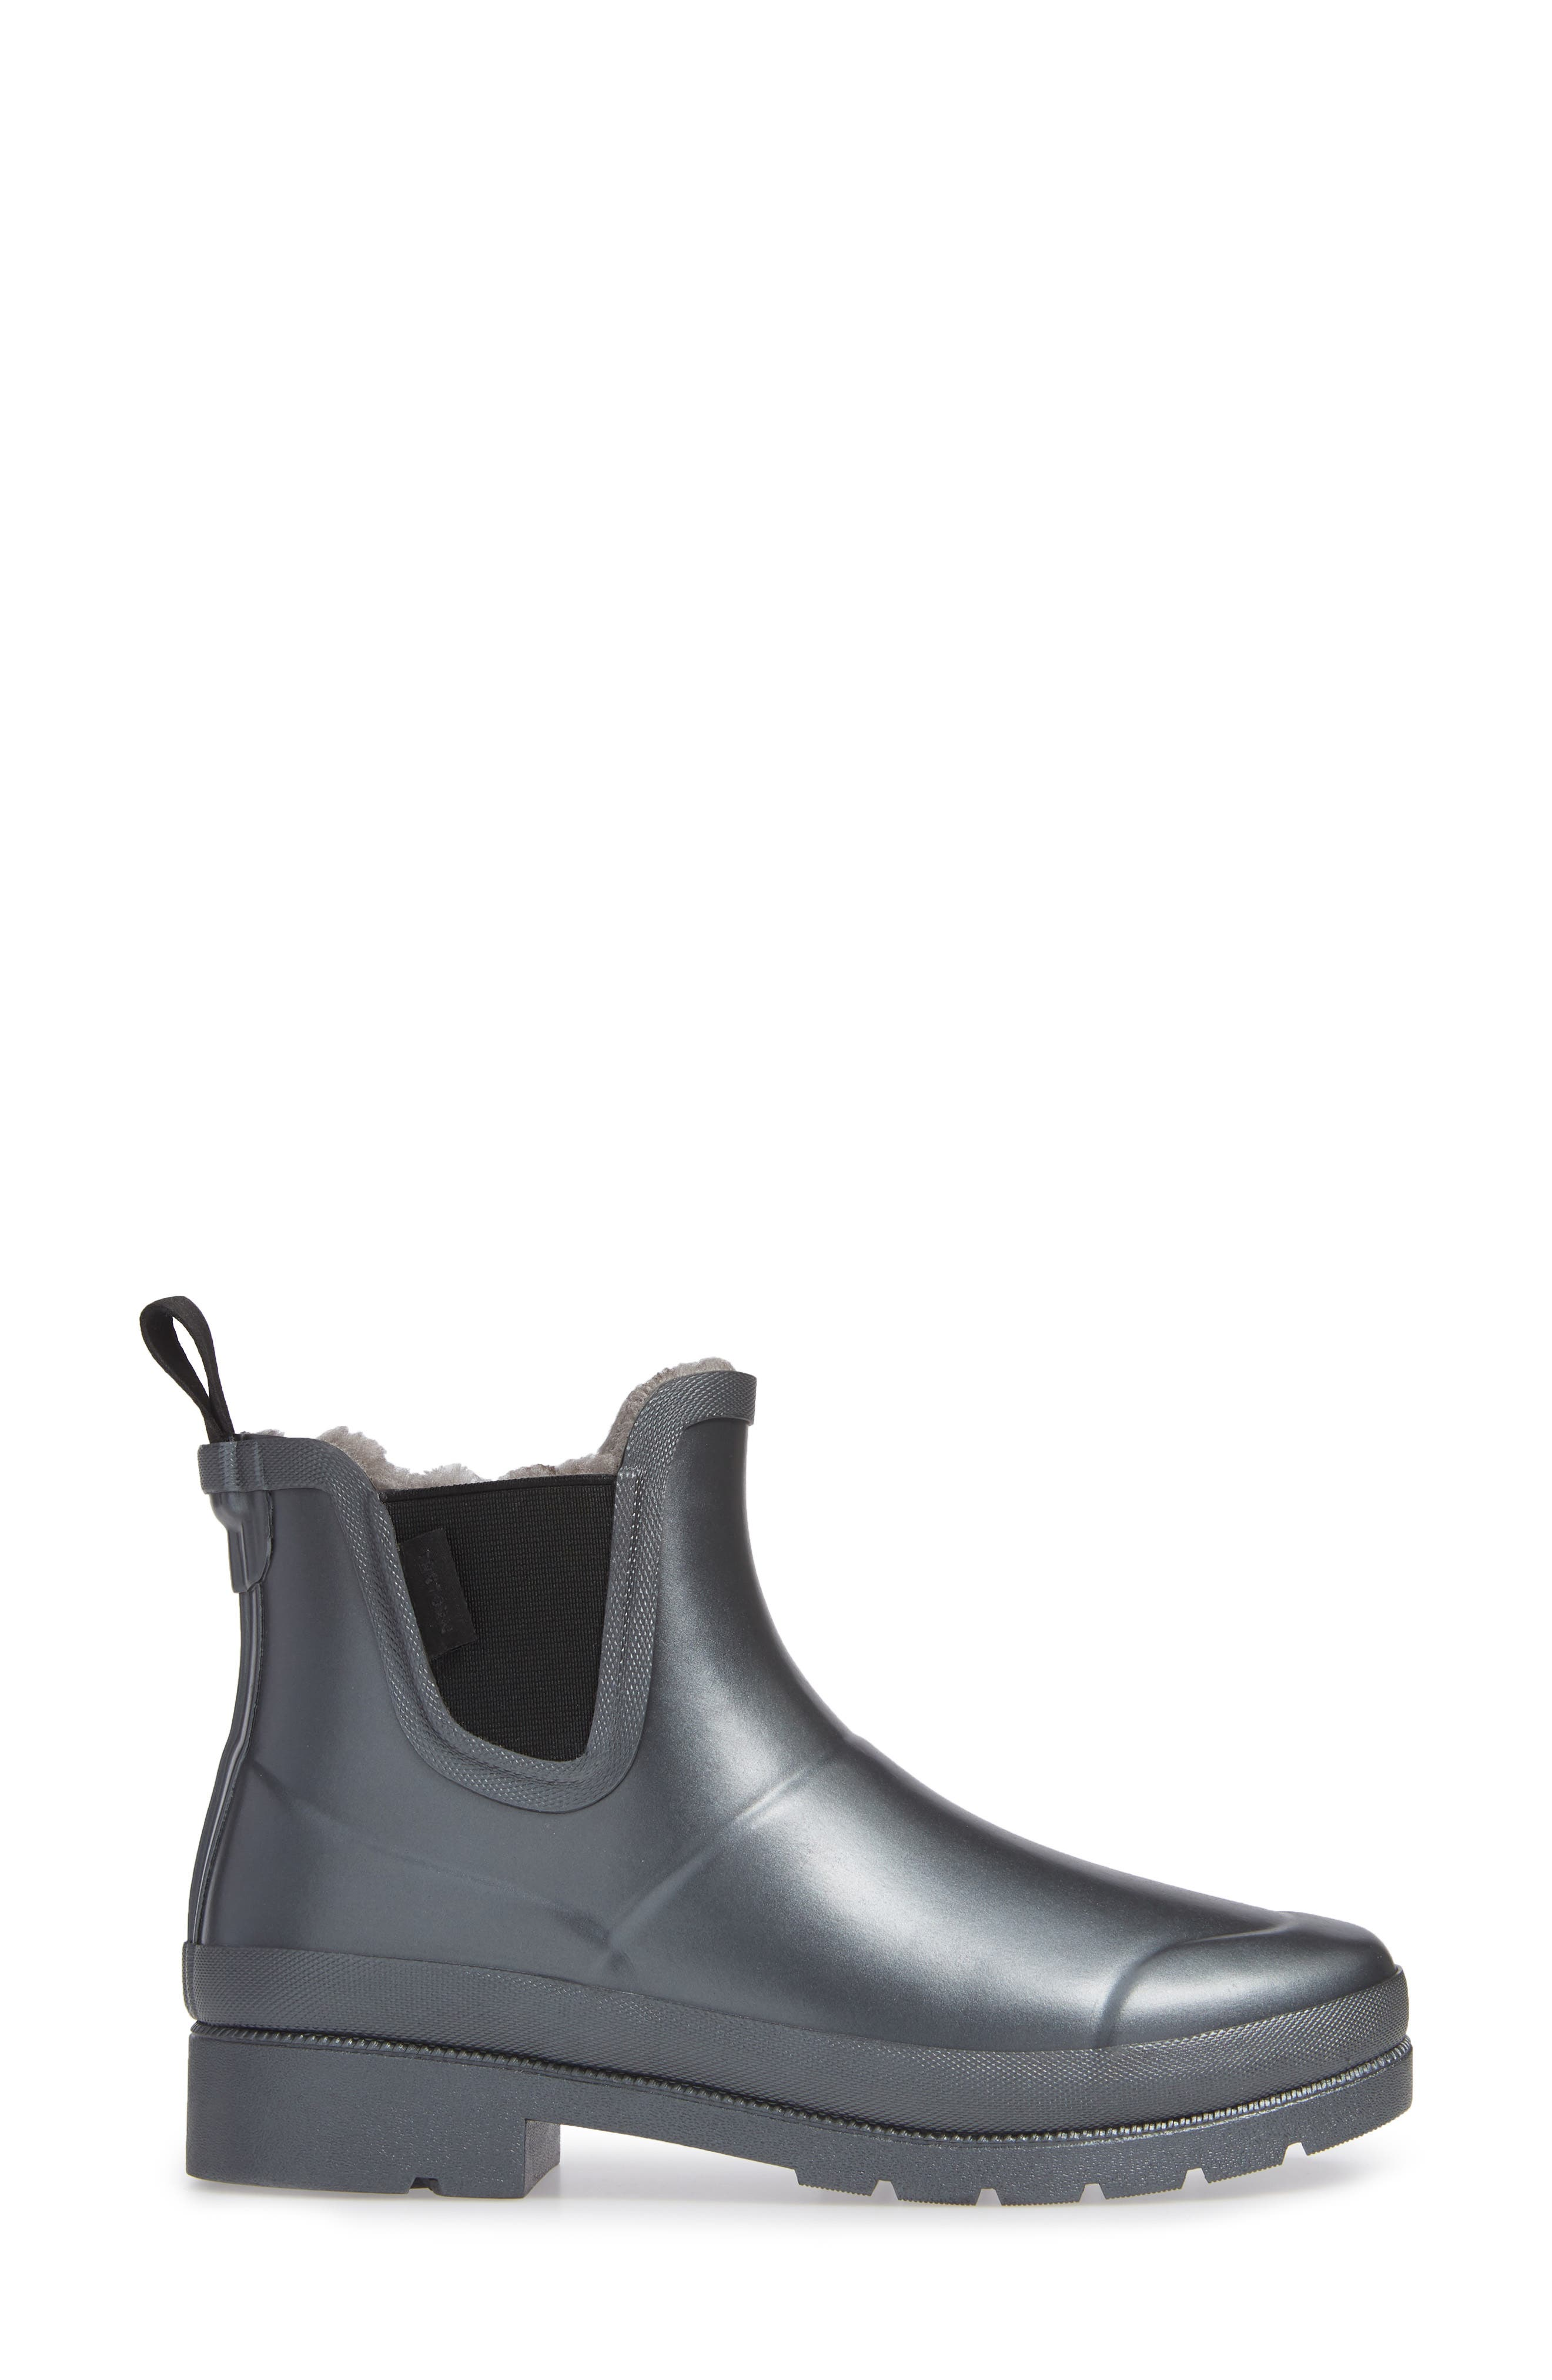 Chelsea Rain Boot,                             Alternate thumbnail 3, color,                             PEWTER